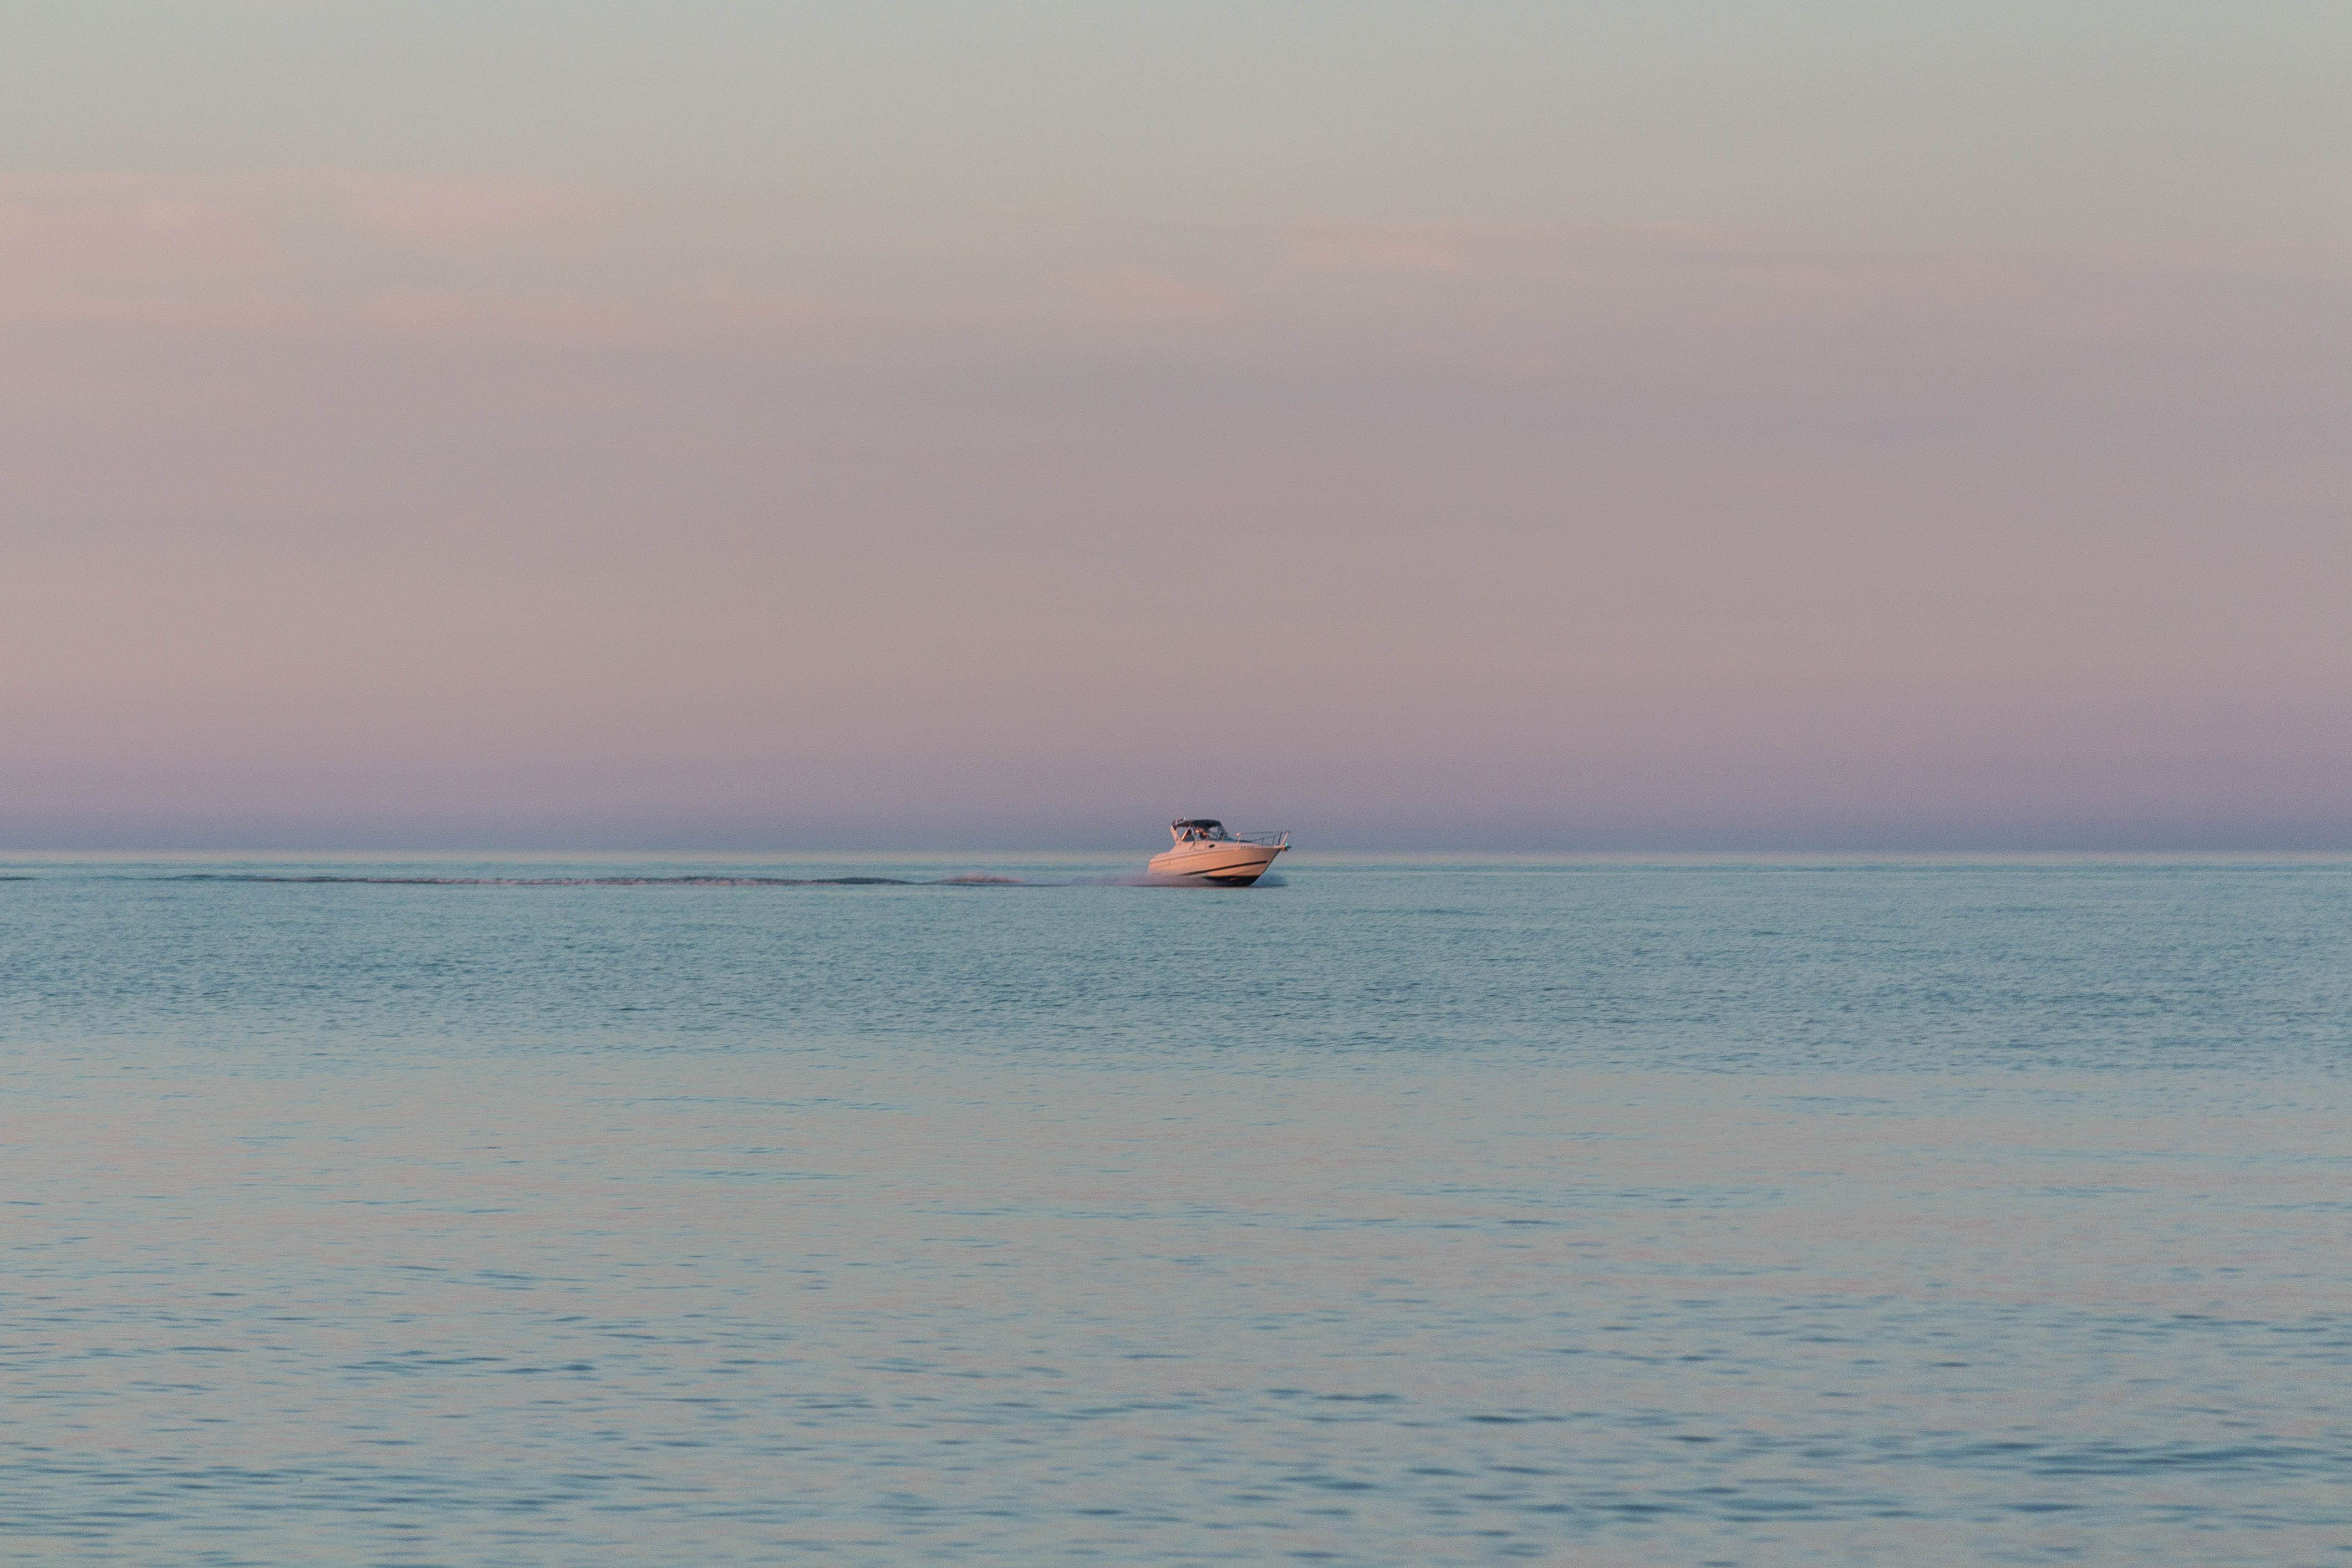 Boat on Lake Michigan at Golden Hour 6.24.16 | https://www.roseclearfield.com